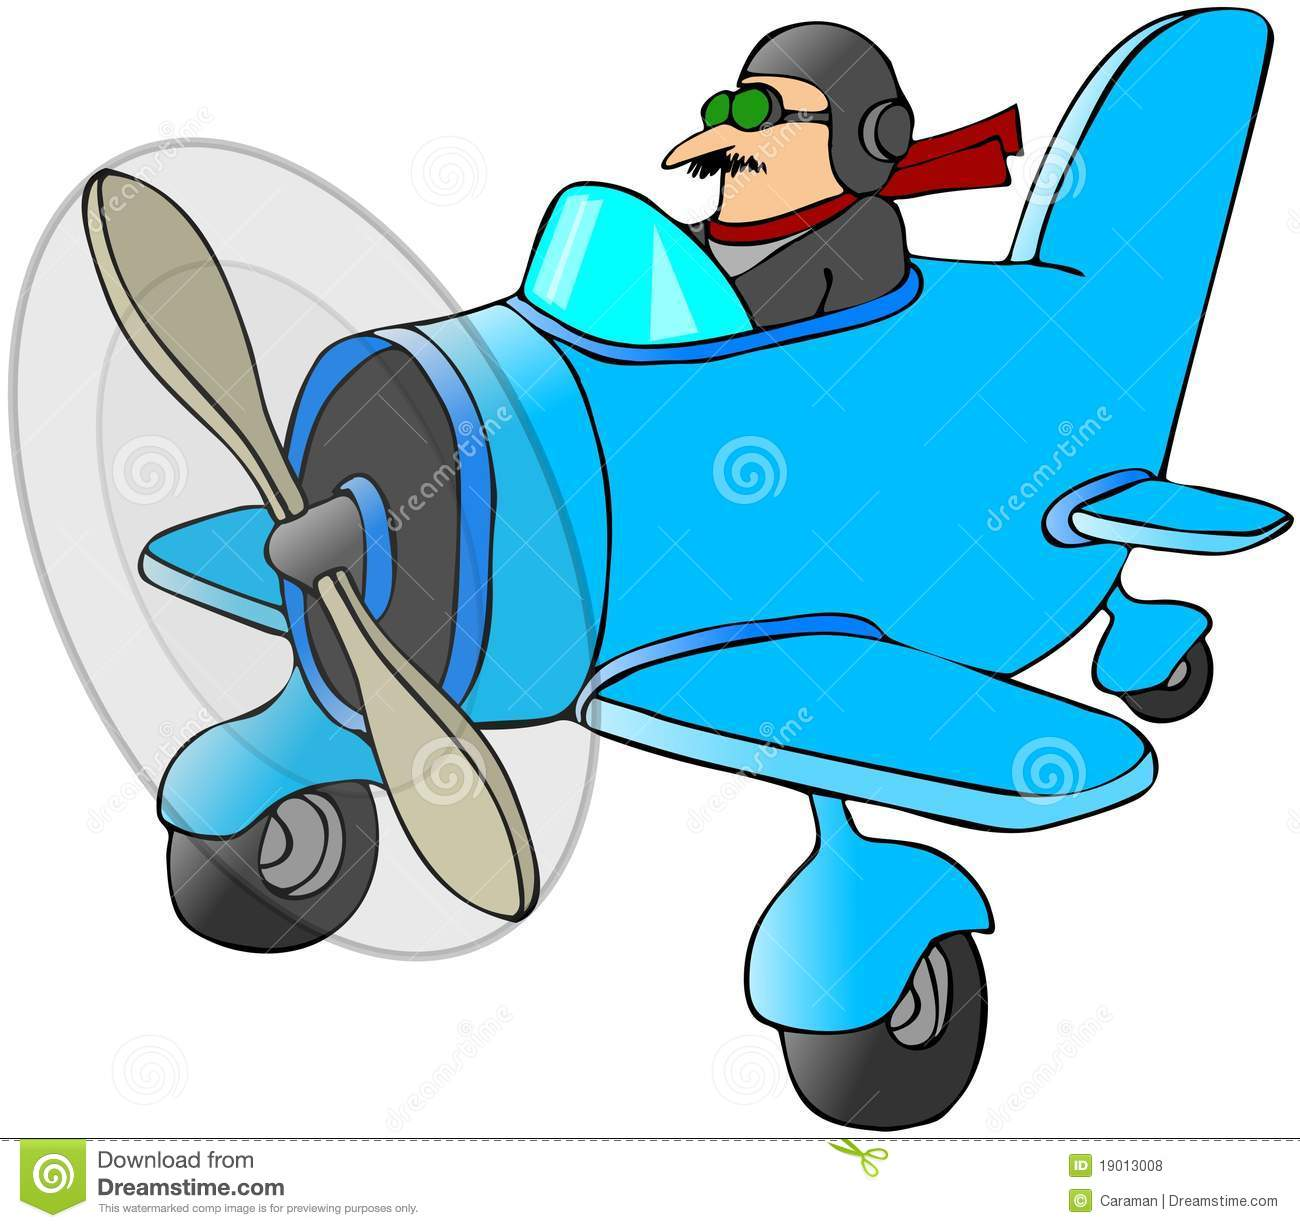 Pilot In A Small Plane Royalty Free Stock Photos - Image: 19013008